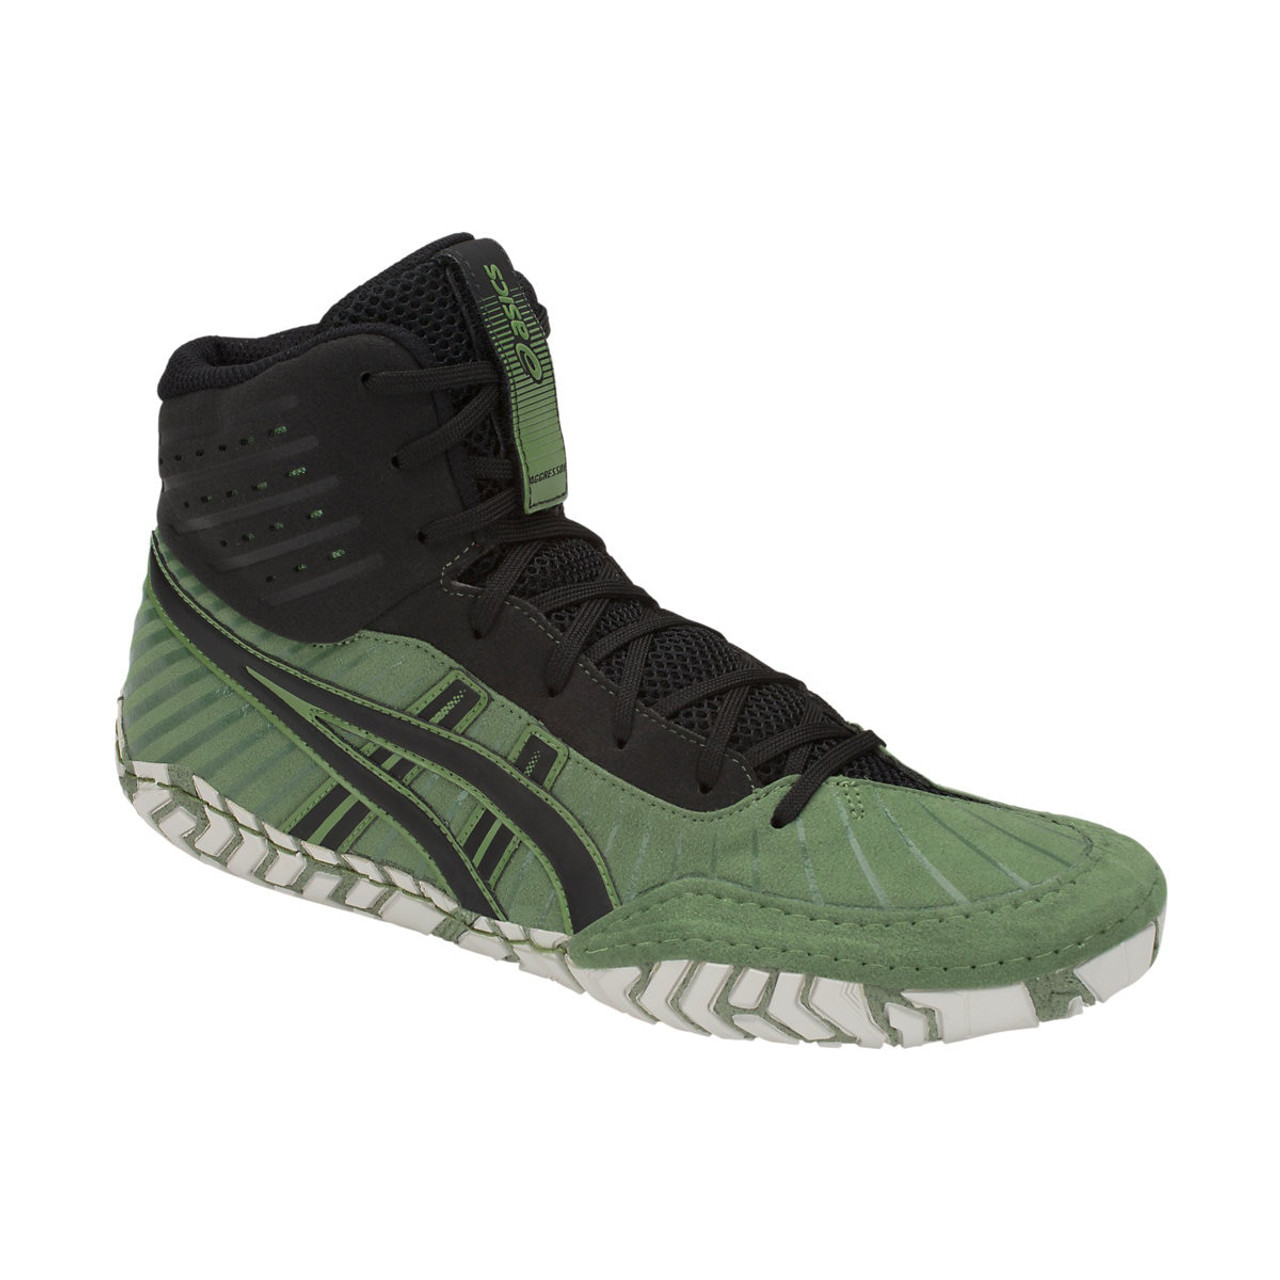 7868fdf3357 Asics Aggressor 4 Men's Wrestling Shoes - Green, Black